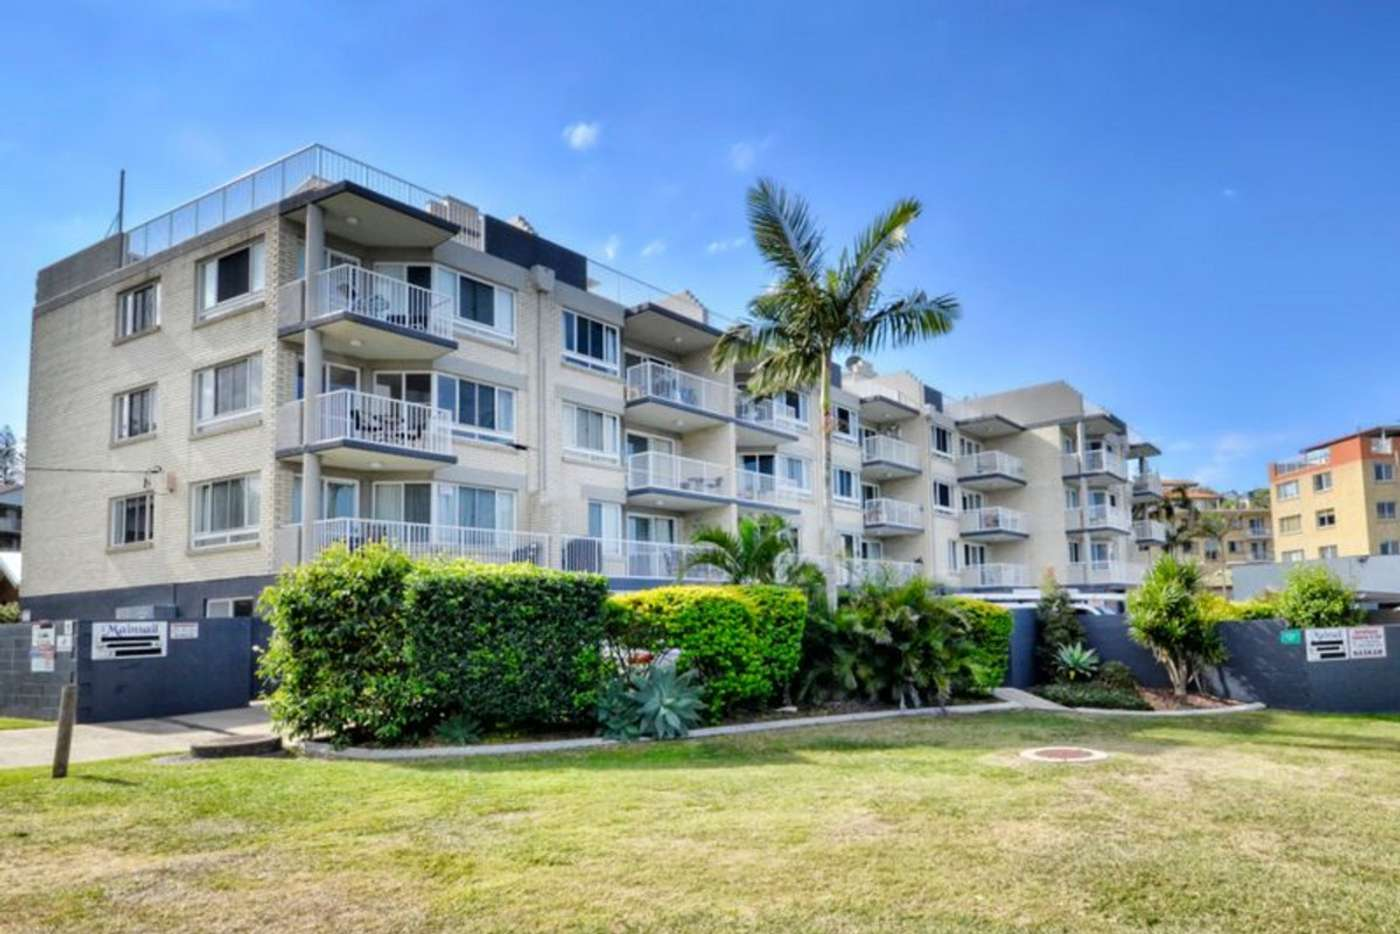 Main view of Homely unit listing, 8/1 Saltair Street, Kings Beach QLD 4551